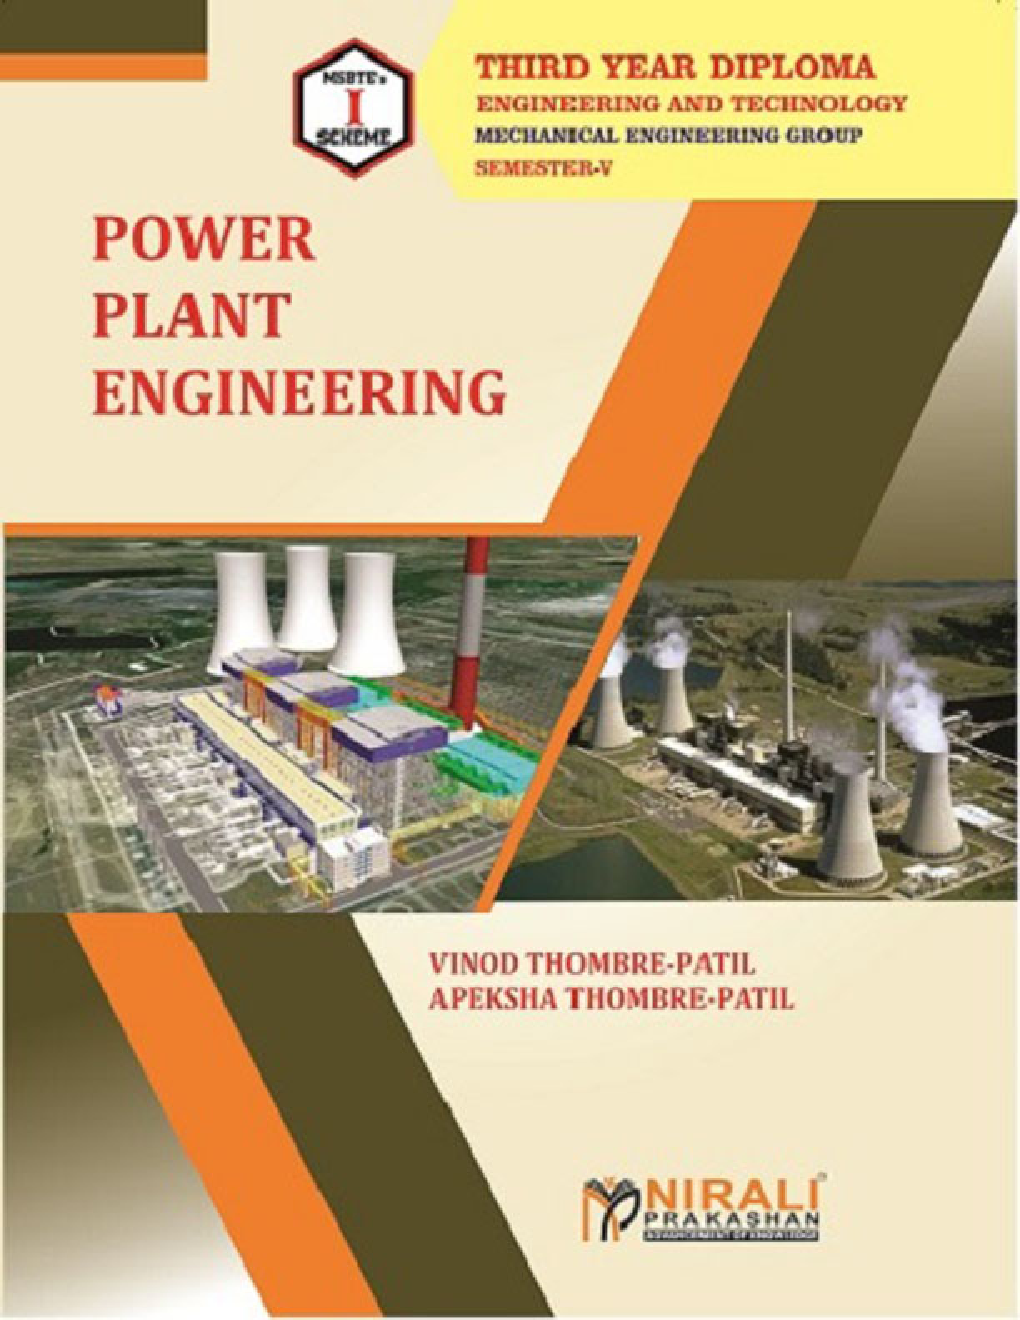 Power Plant Engineering - Page 1